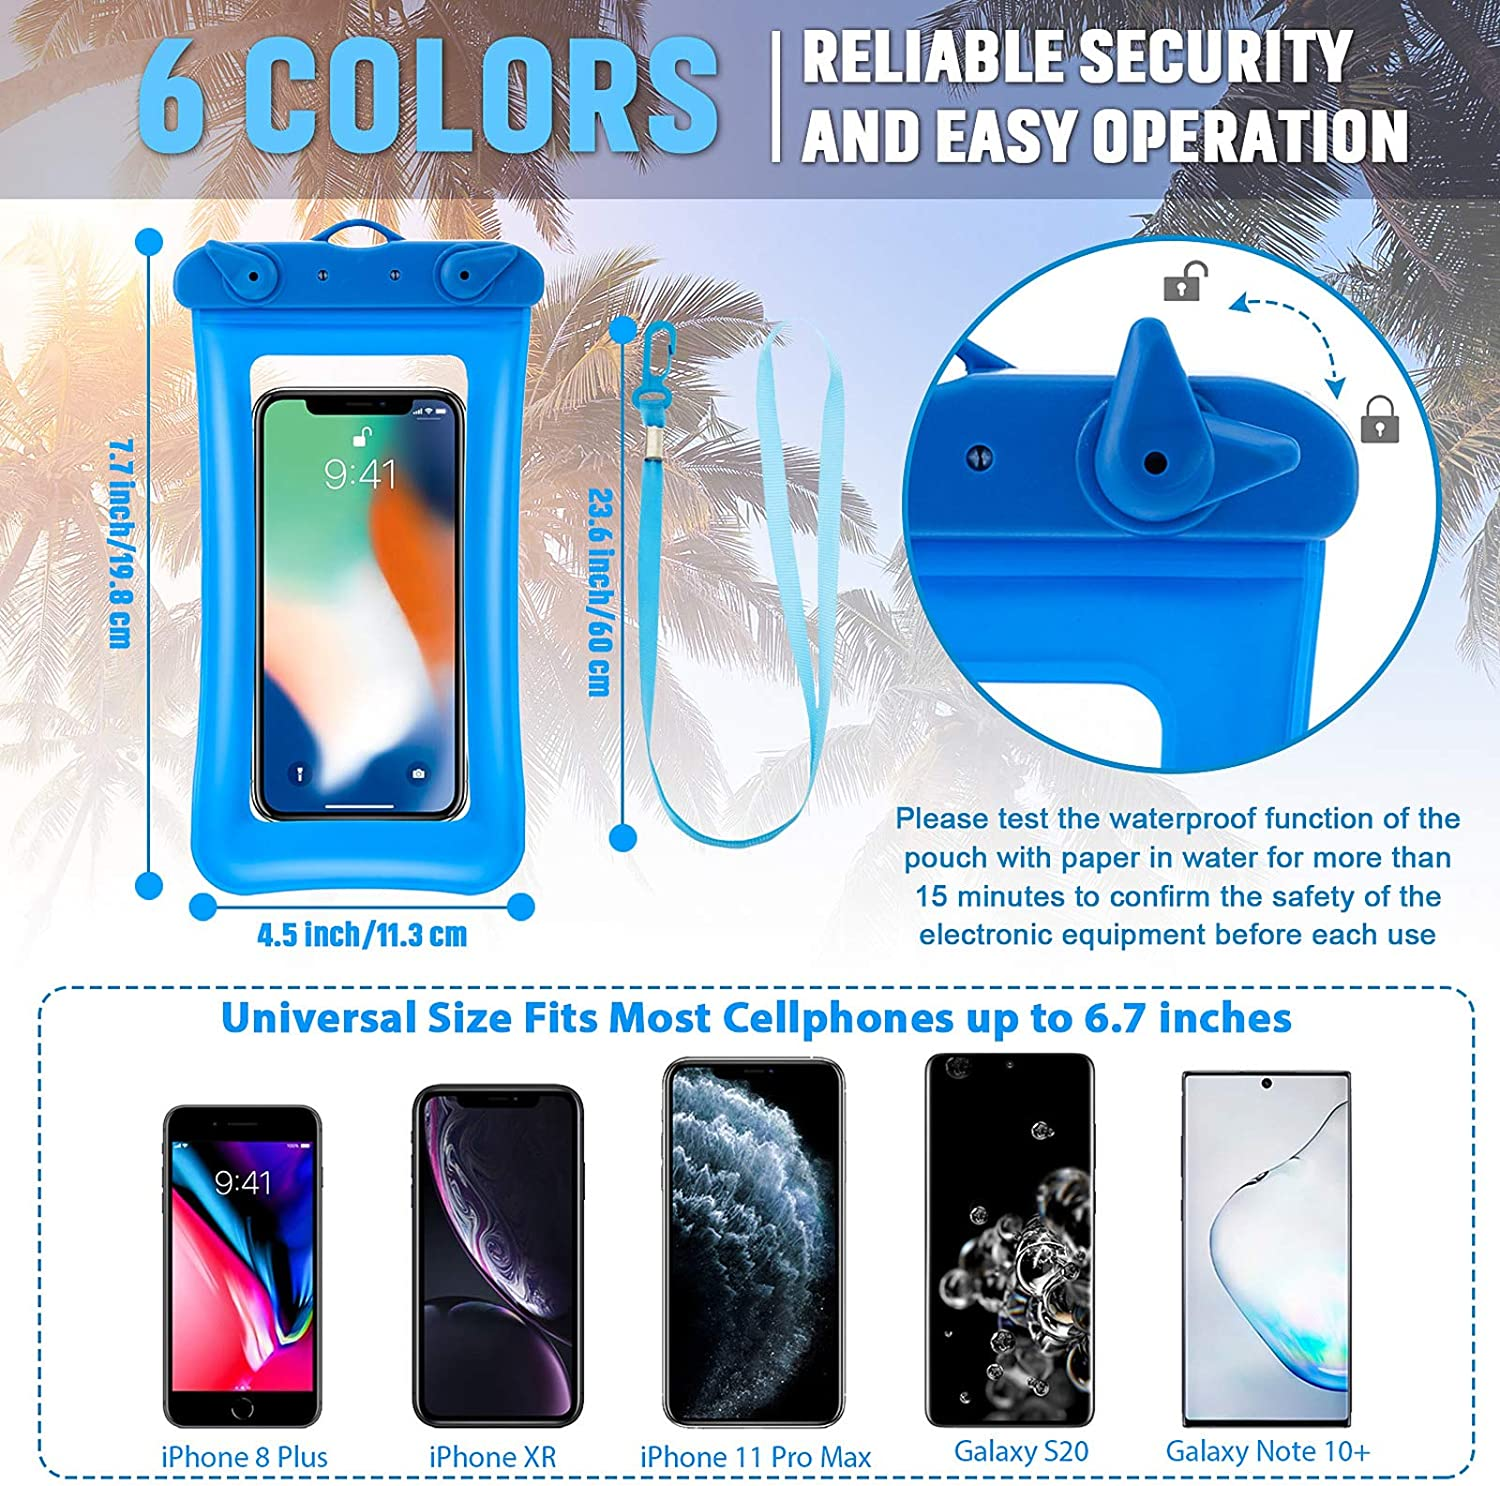 12 Pieces Floating Phone Pouch Floatable Phone Case Waterproof Cellphone Case Universal Cellphone Dry Bag with Lanyard Beach Swimming Snorkeling Bag for Smartphone up to 6.5 Inch (Assorted Color)